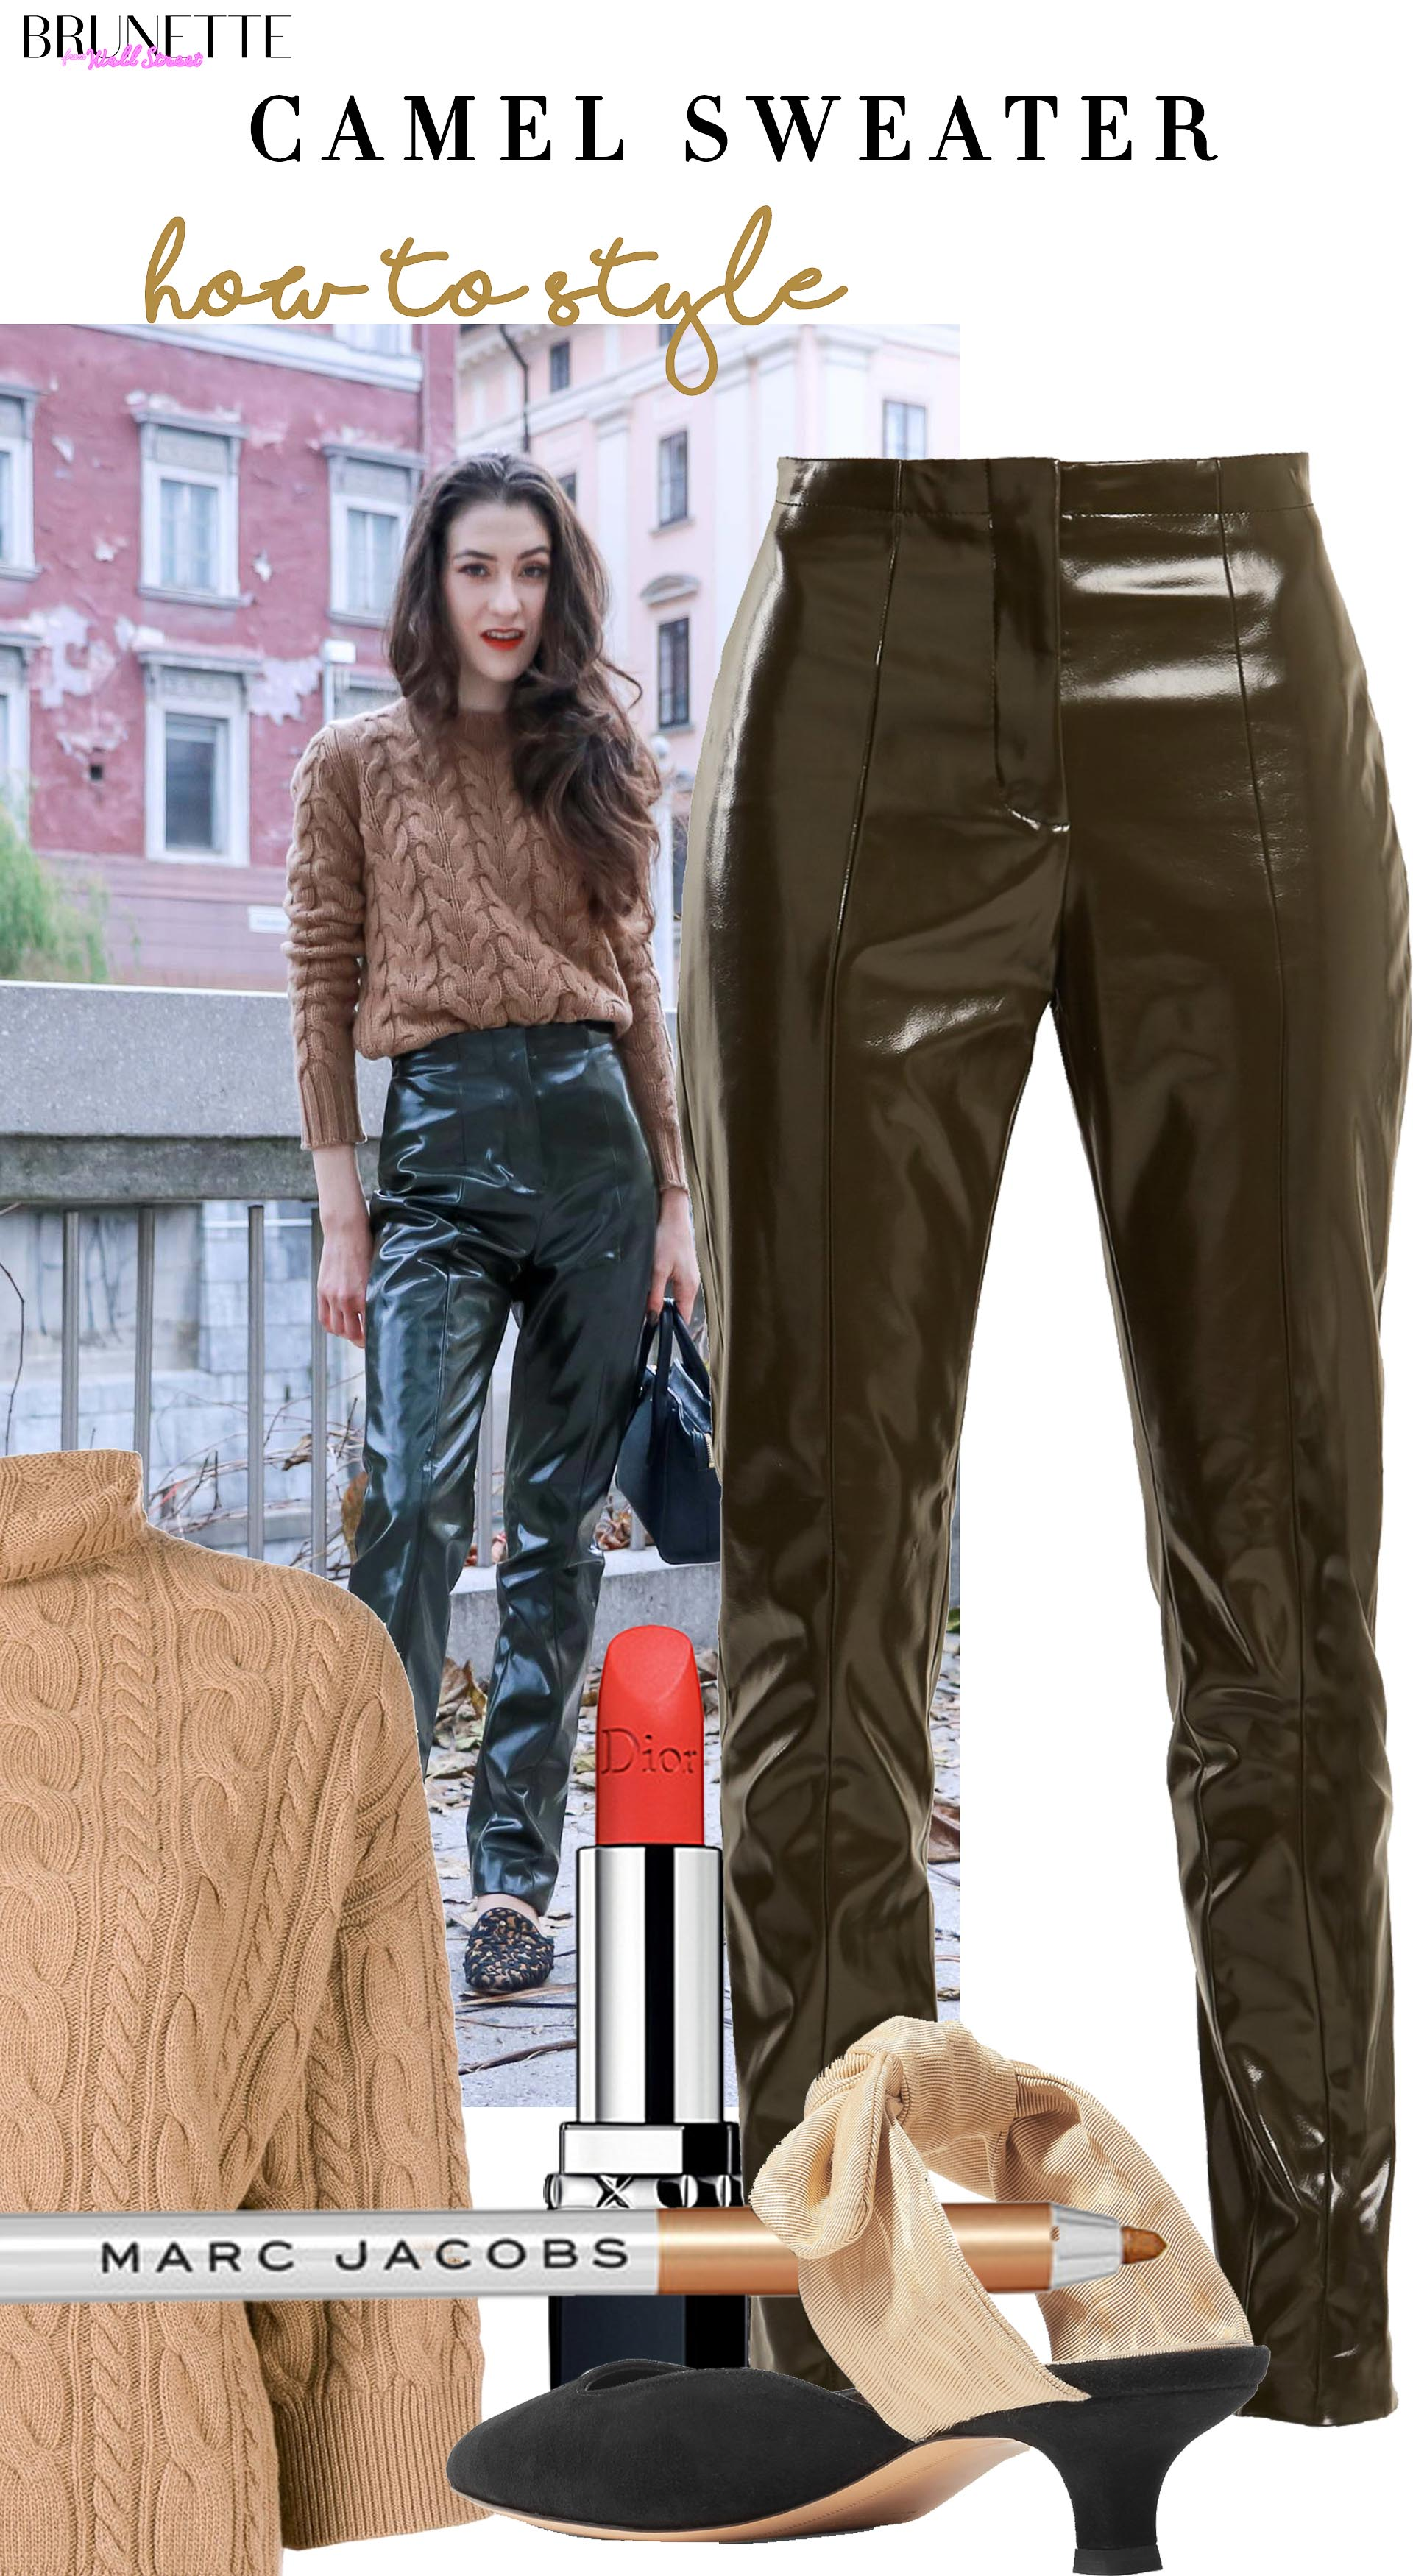 Brunette from Wall Street how to dress up acne studios vinyl pants max mara camel sweater for work